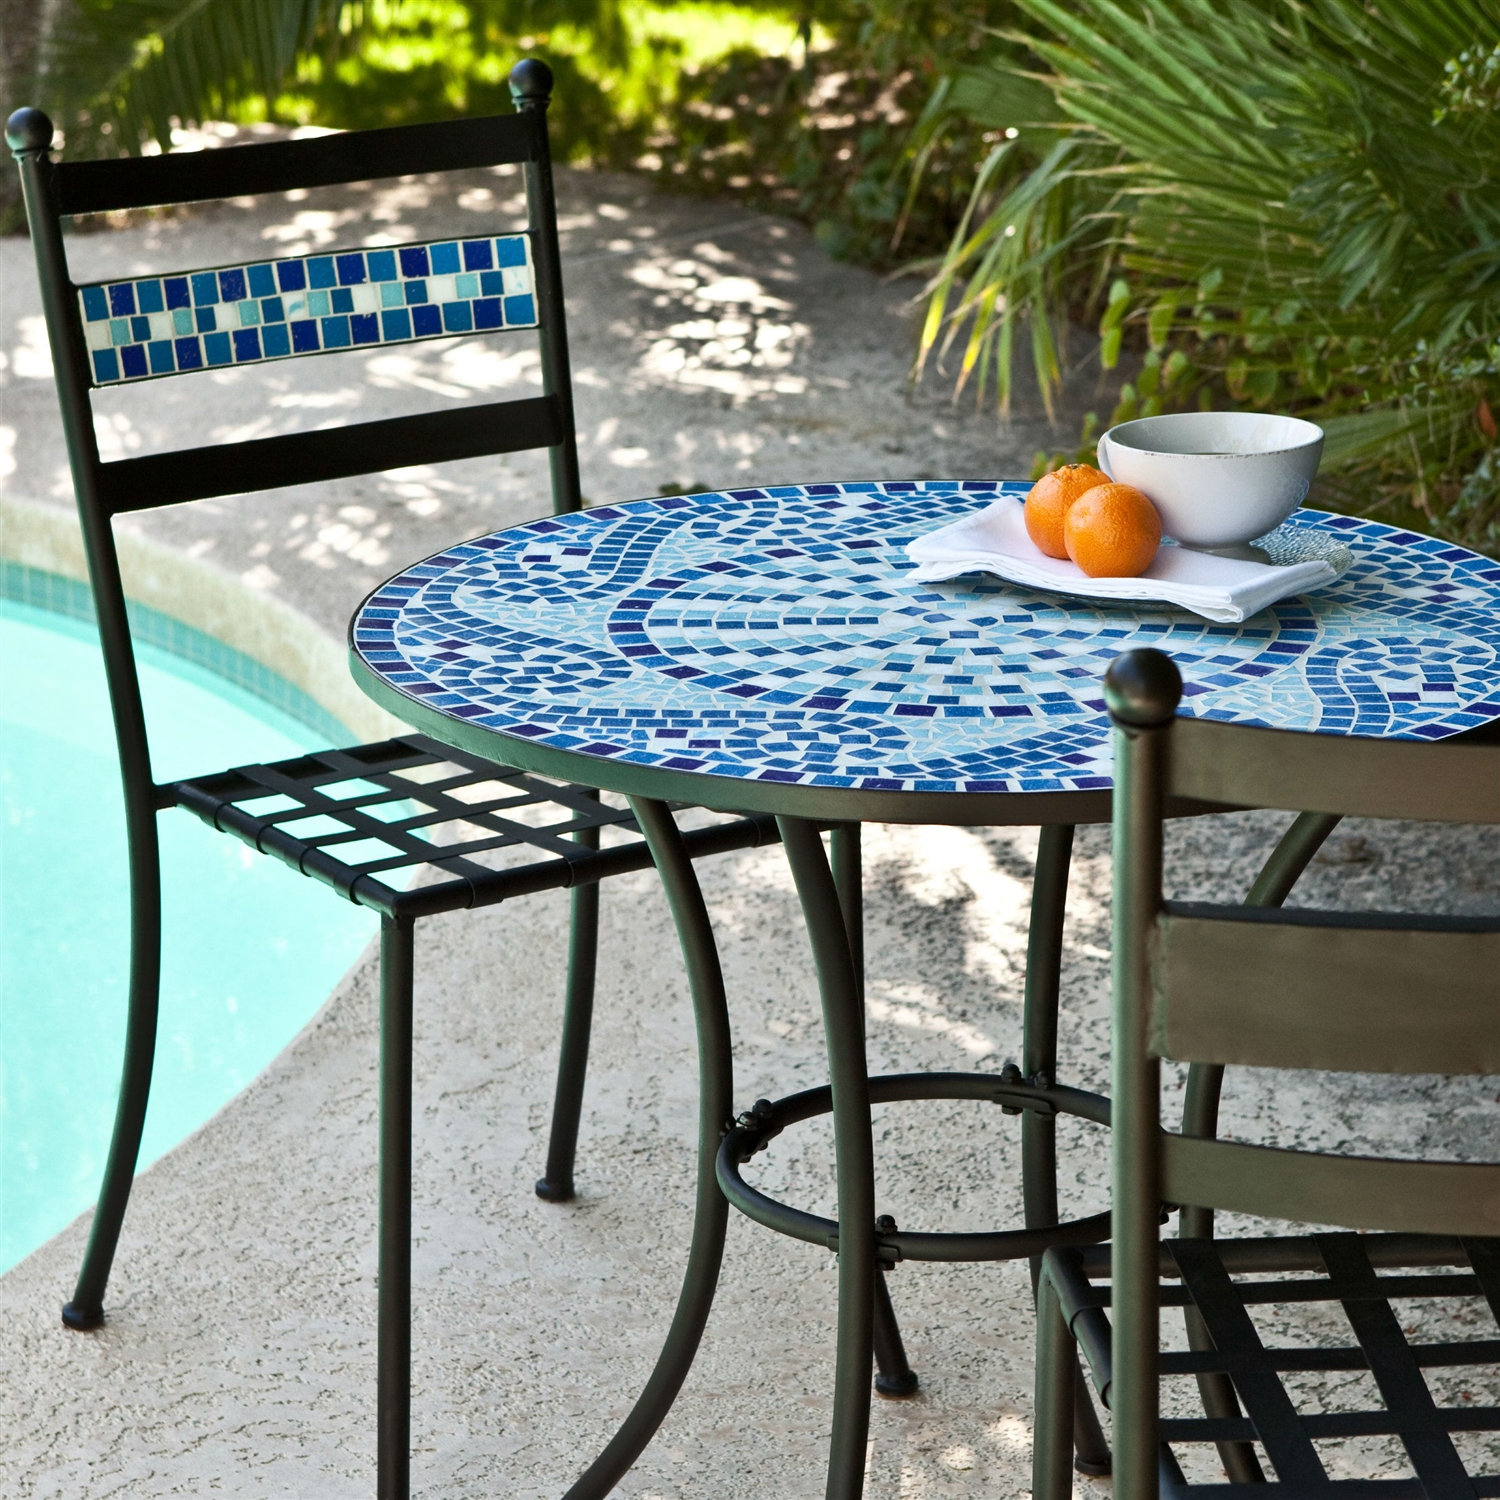 Outdoor 3-Piece Aqua Blue Mosaic Tiles Patio Furniture Bistro Set - Outdoor 3-Piece Aqua Blue Mosaic Tiles Patio Furniture Bistro Set